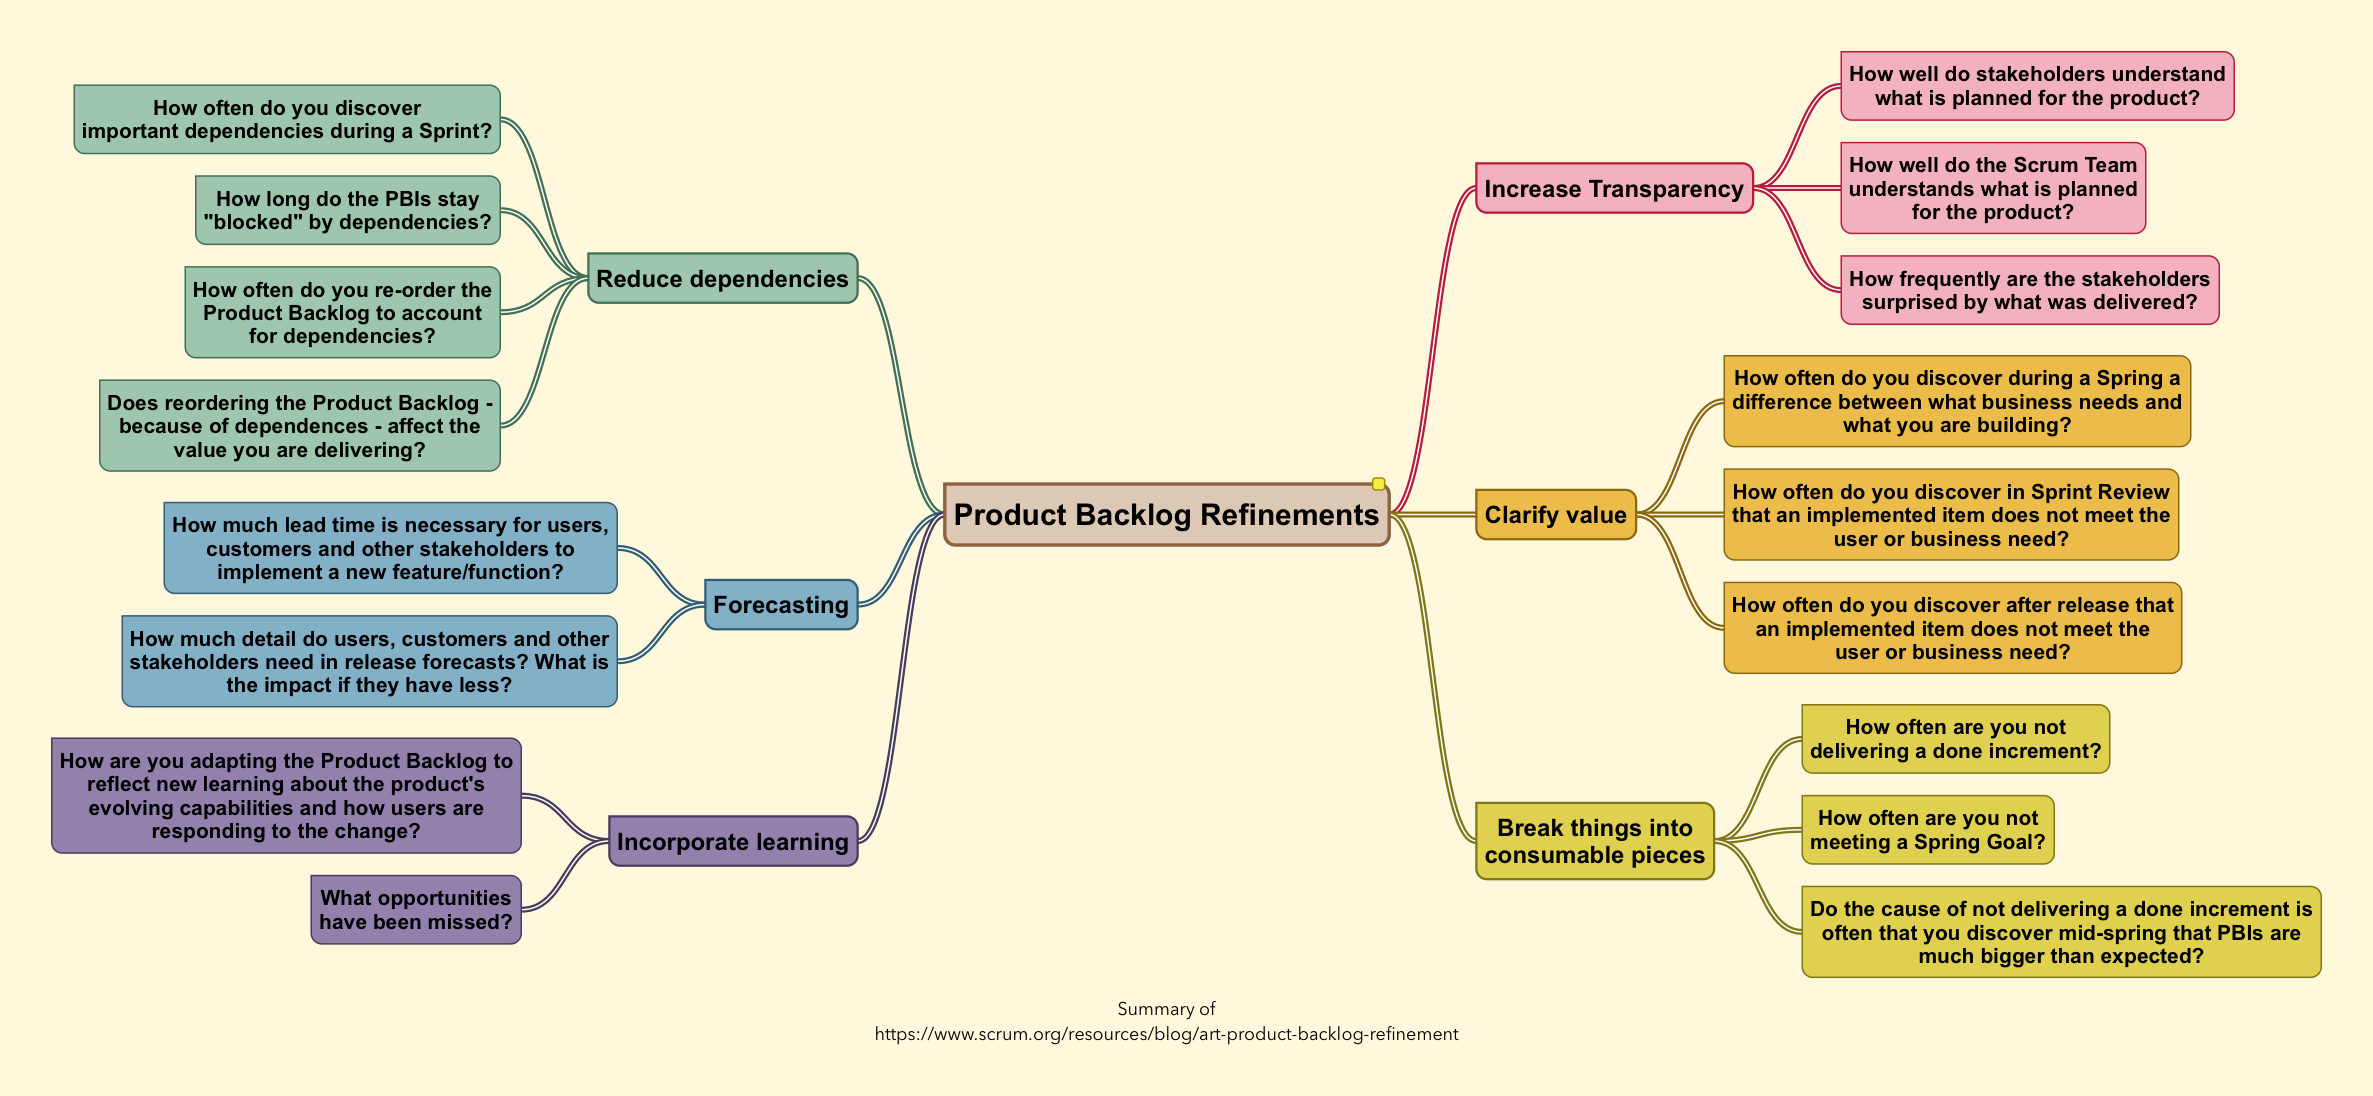 Questions about value of product backlog refinements